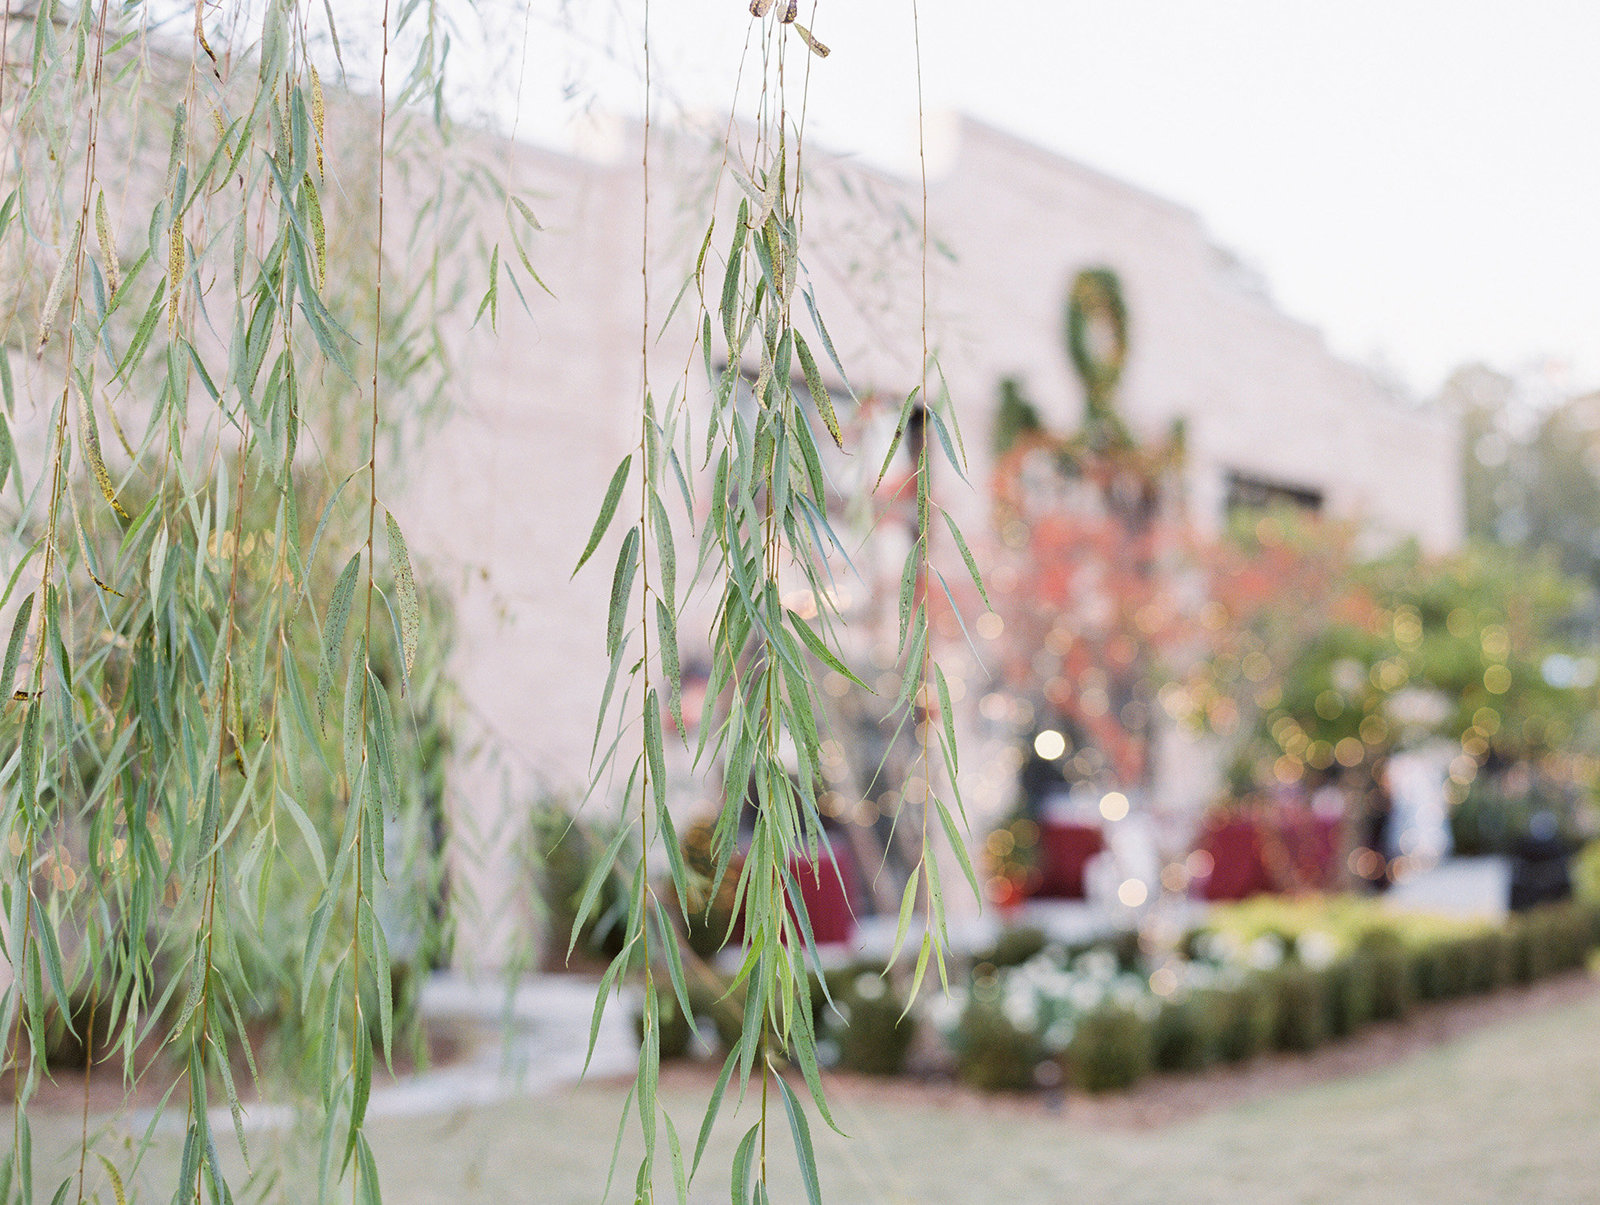 20171216-Pura-Soul-Photo-Wrightsville-Manor-Cortale-Wedding-film-1